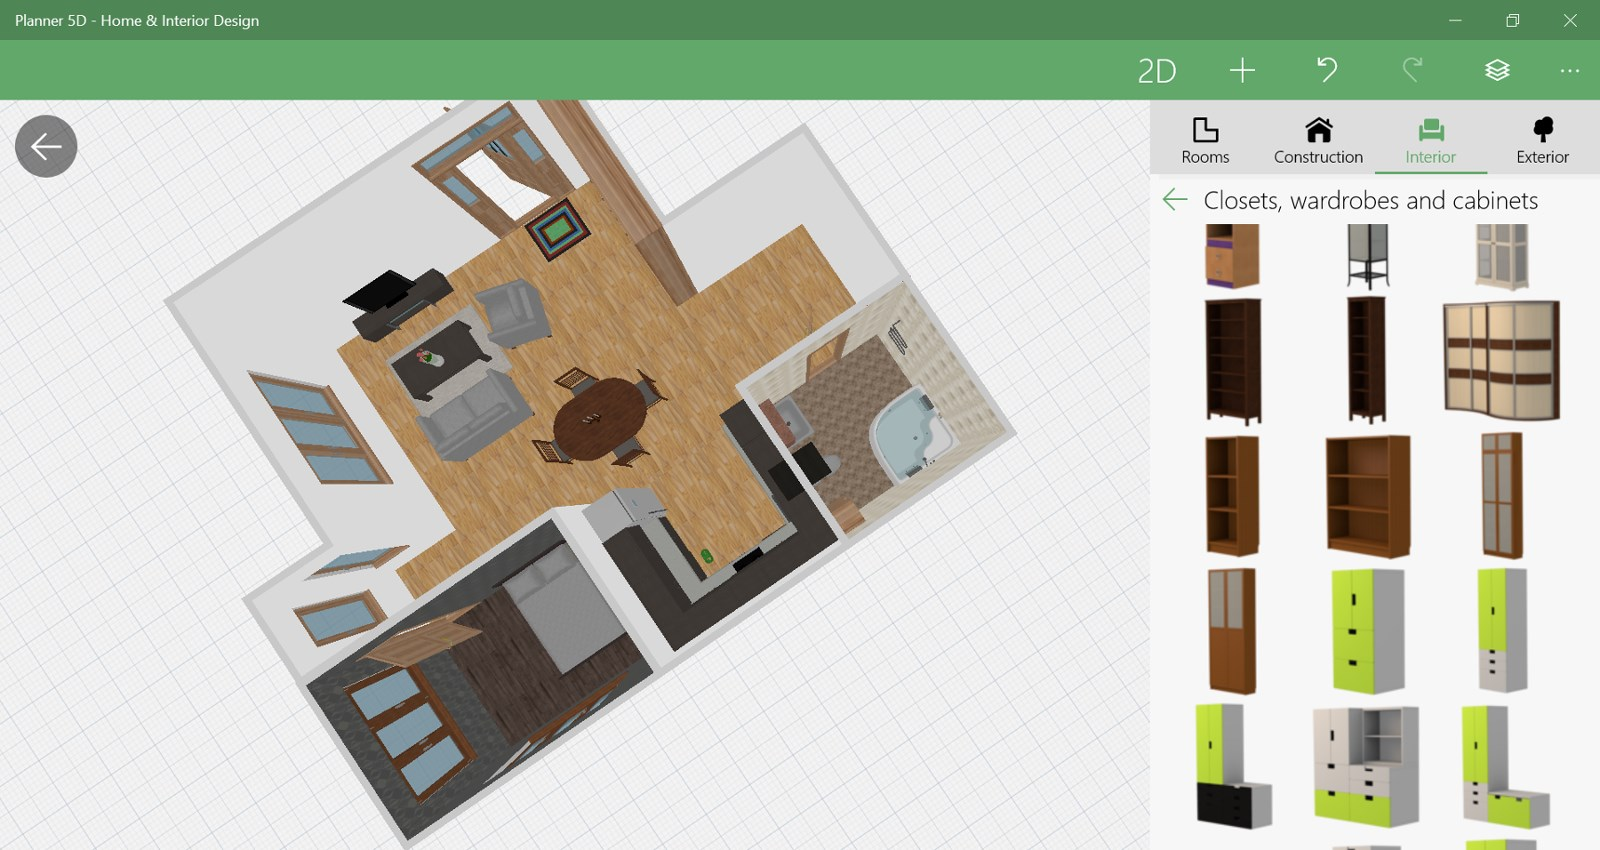 Planner 5d Home Interior Design For Windows 10